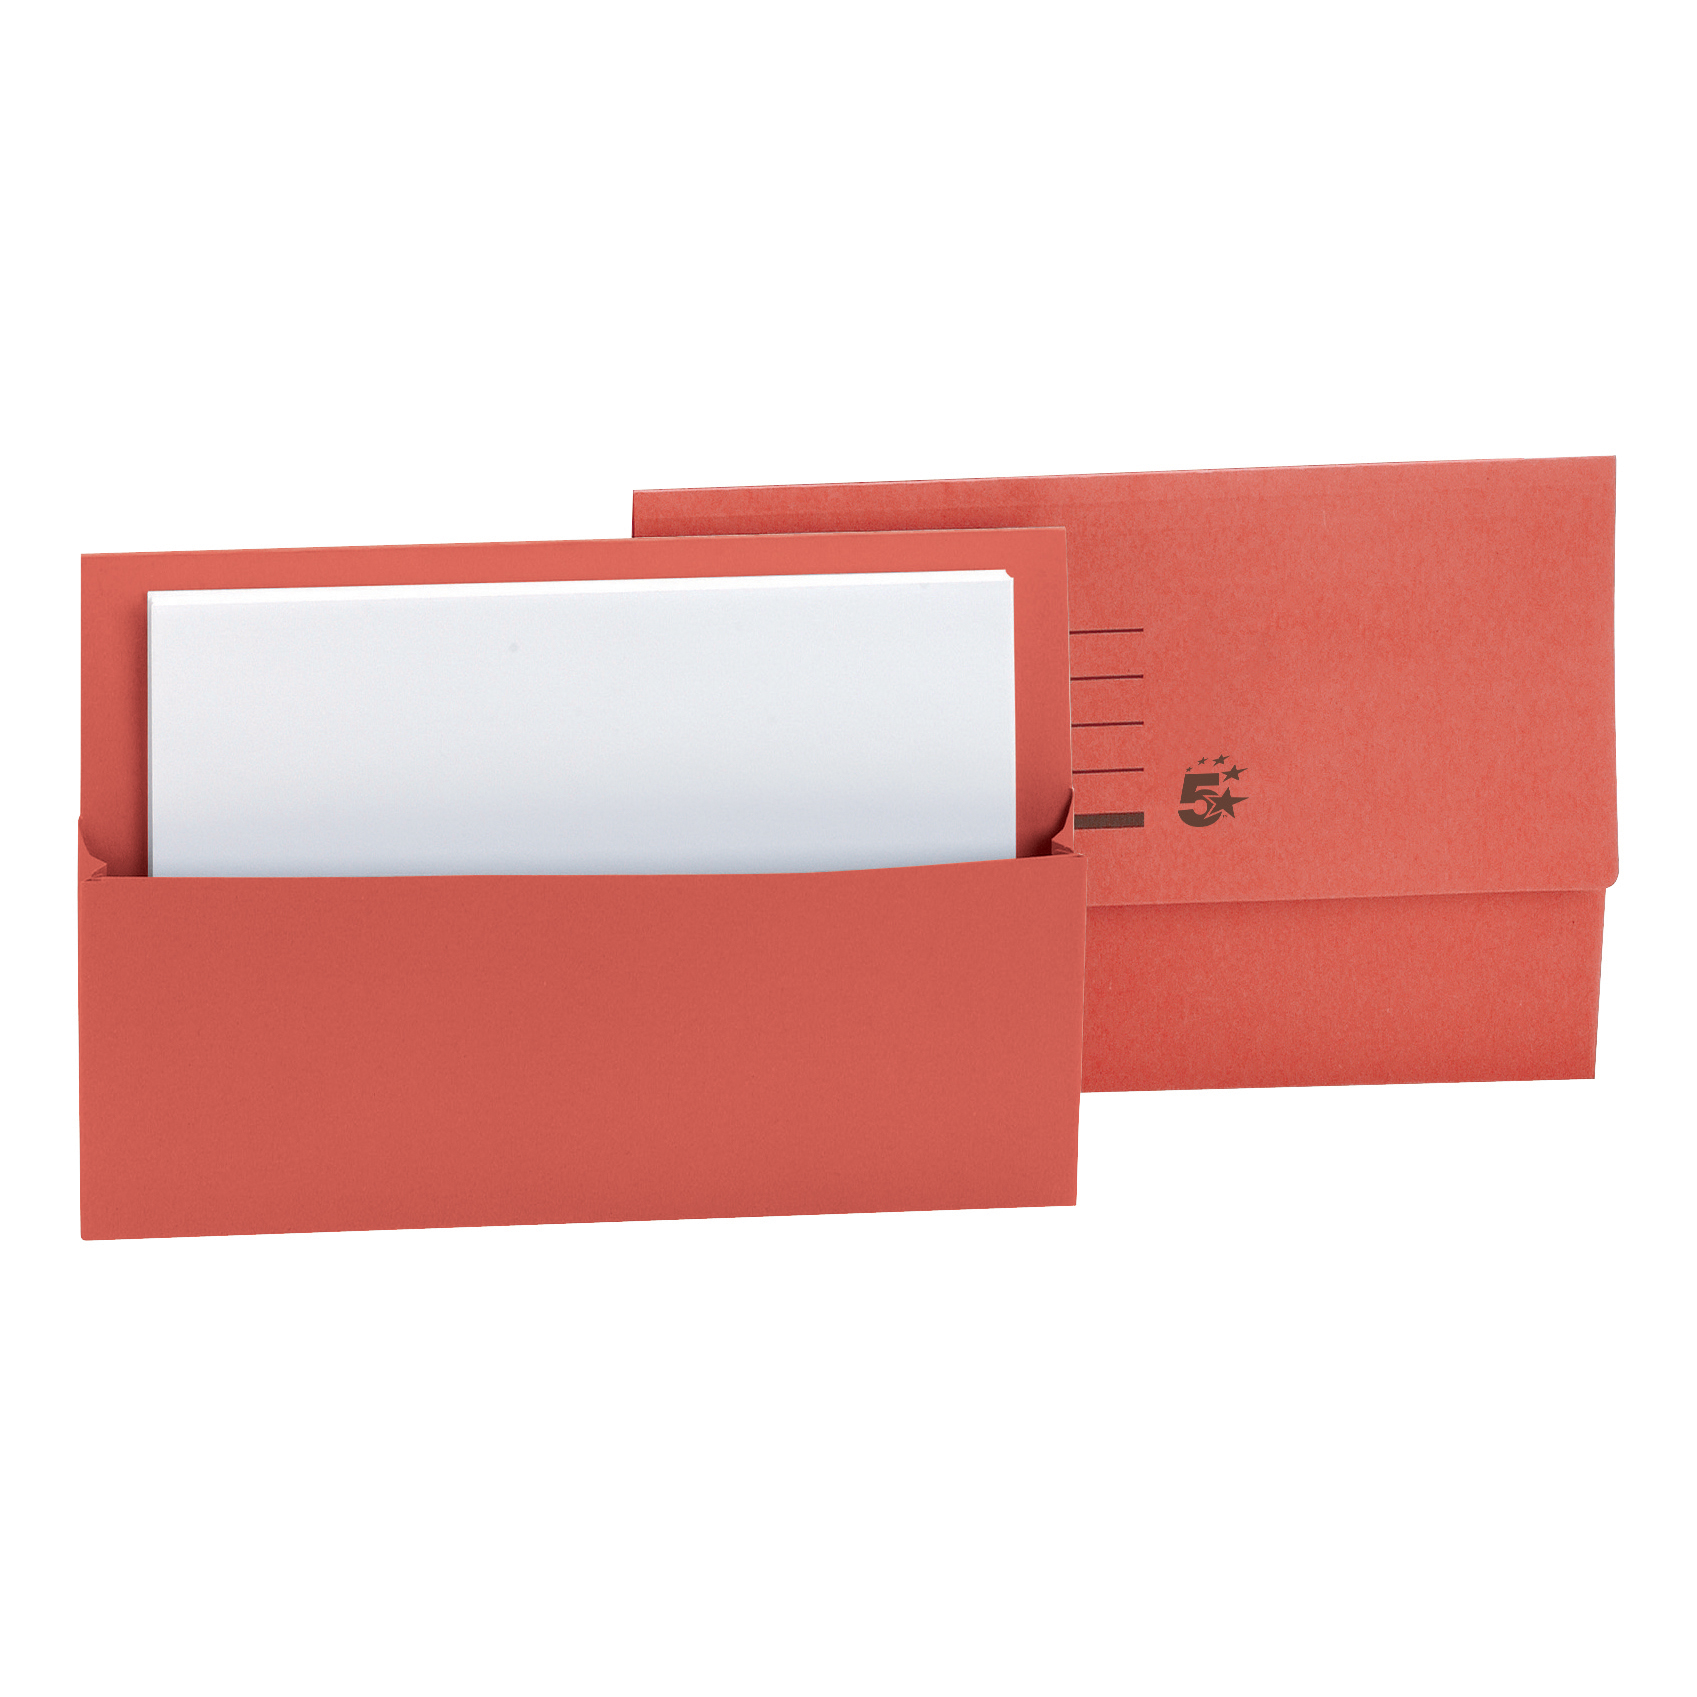 5 Star Office Document Wallet Half Flap 250gsm Recycled Capacity 32mm Foolscap Red [Pack 50]